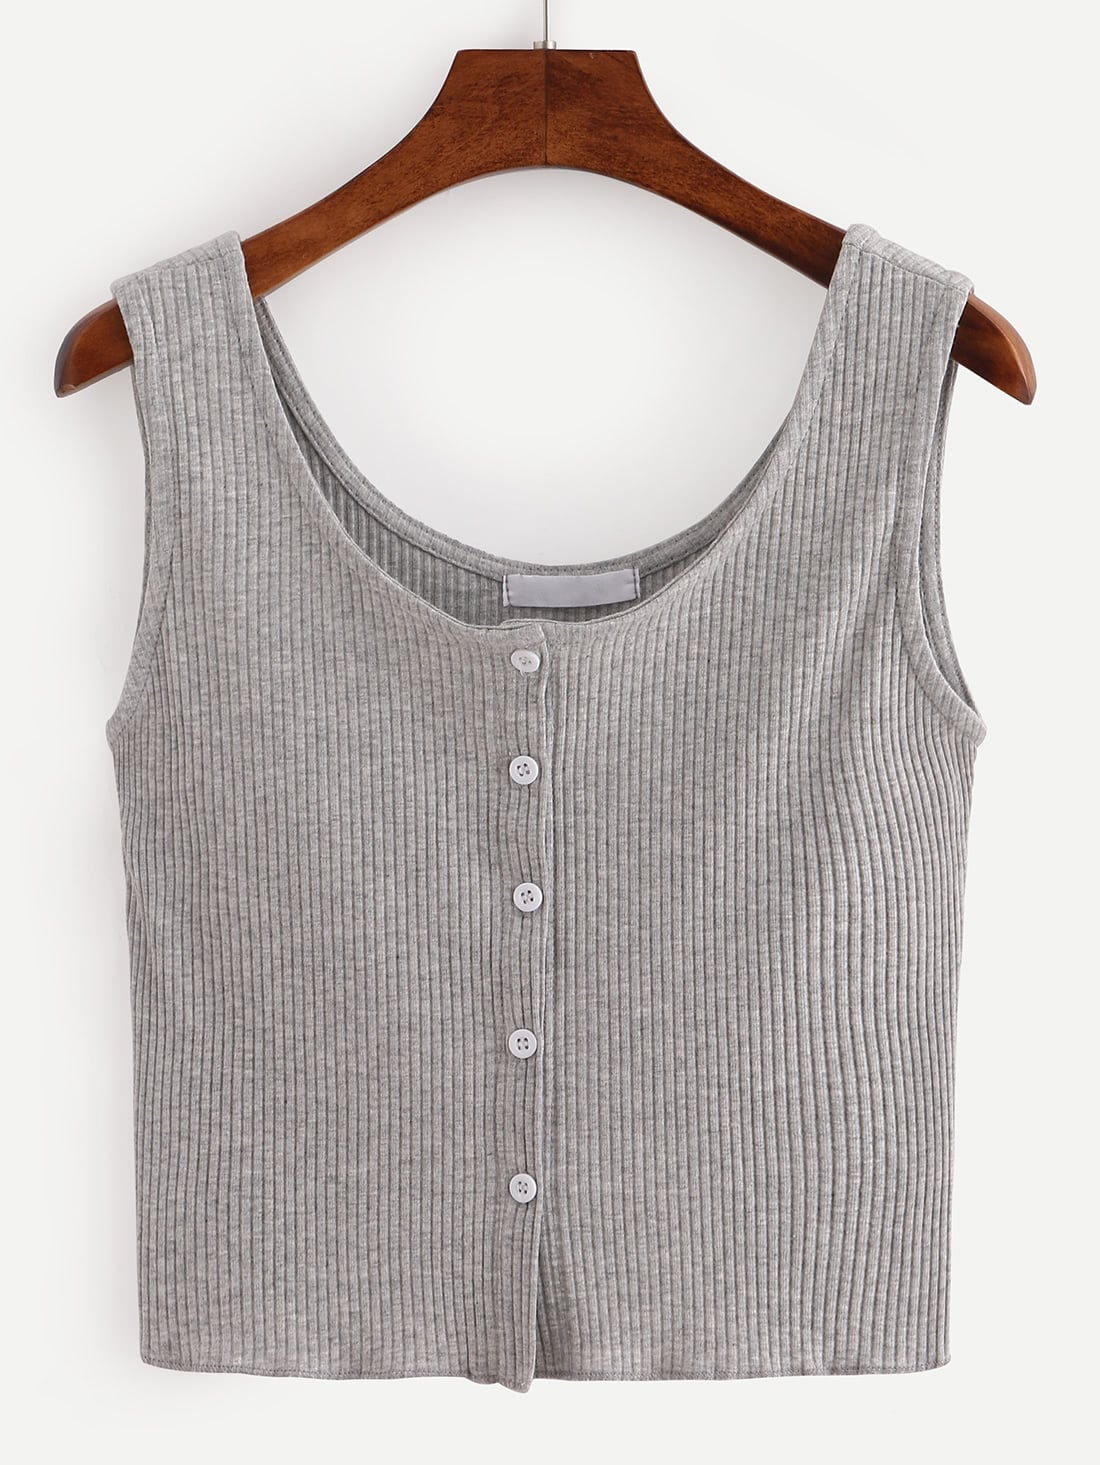 Buttoned Front Ribbed Knit Crop Tank Top - Grey vest160524077